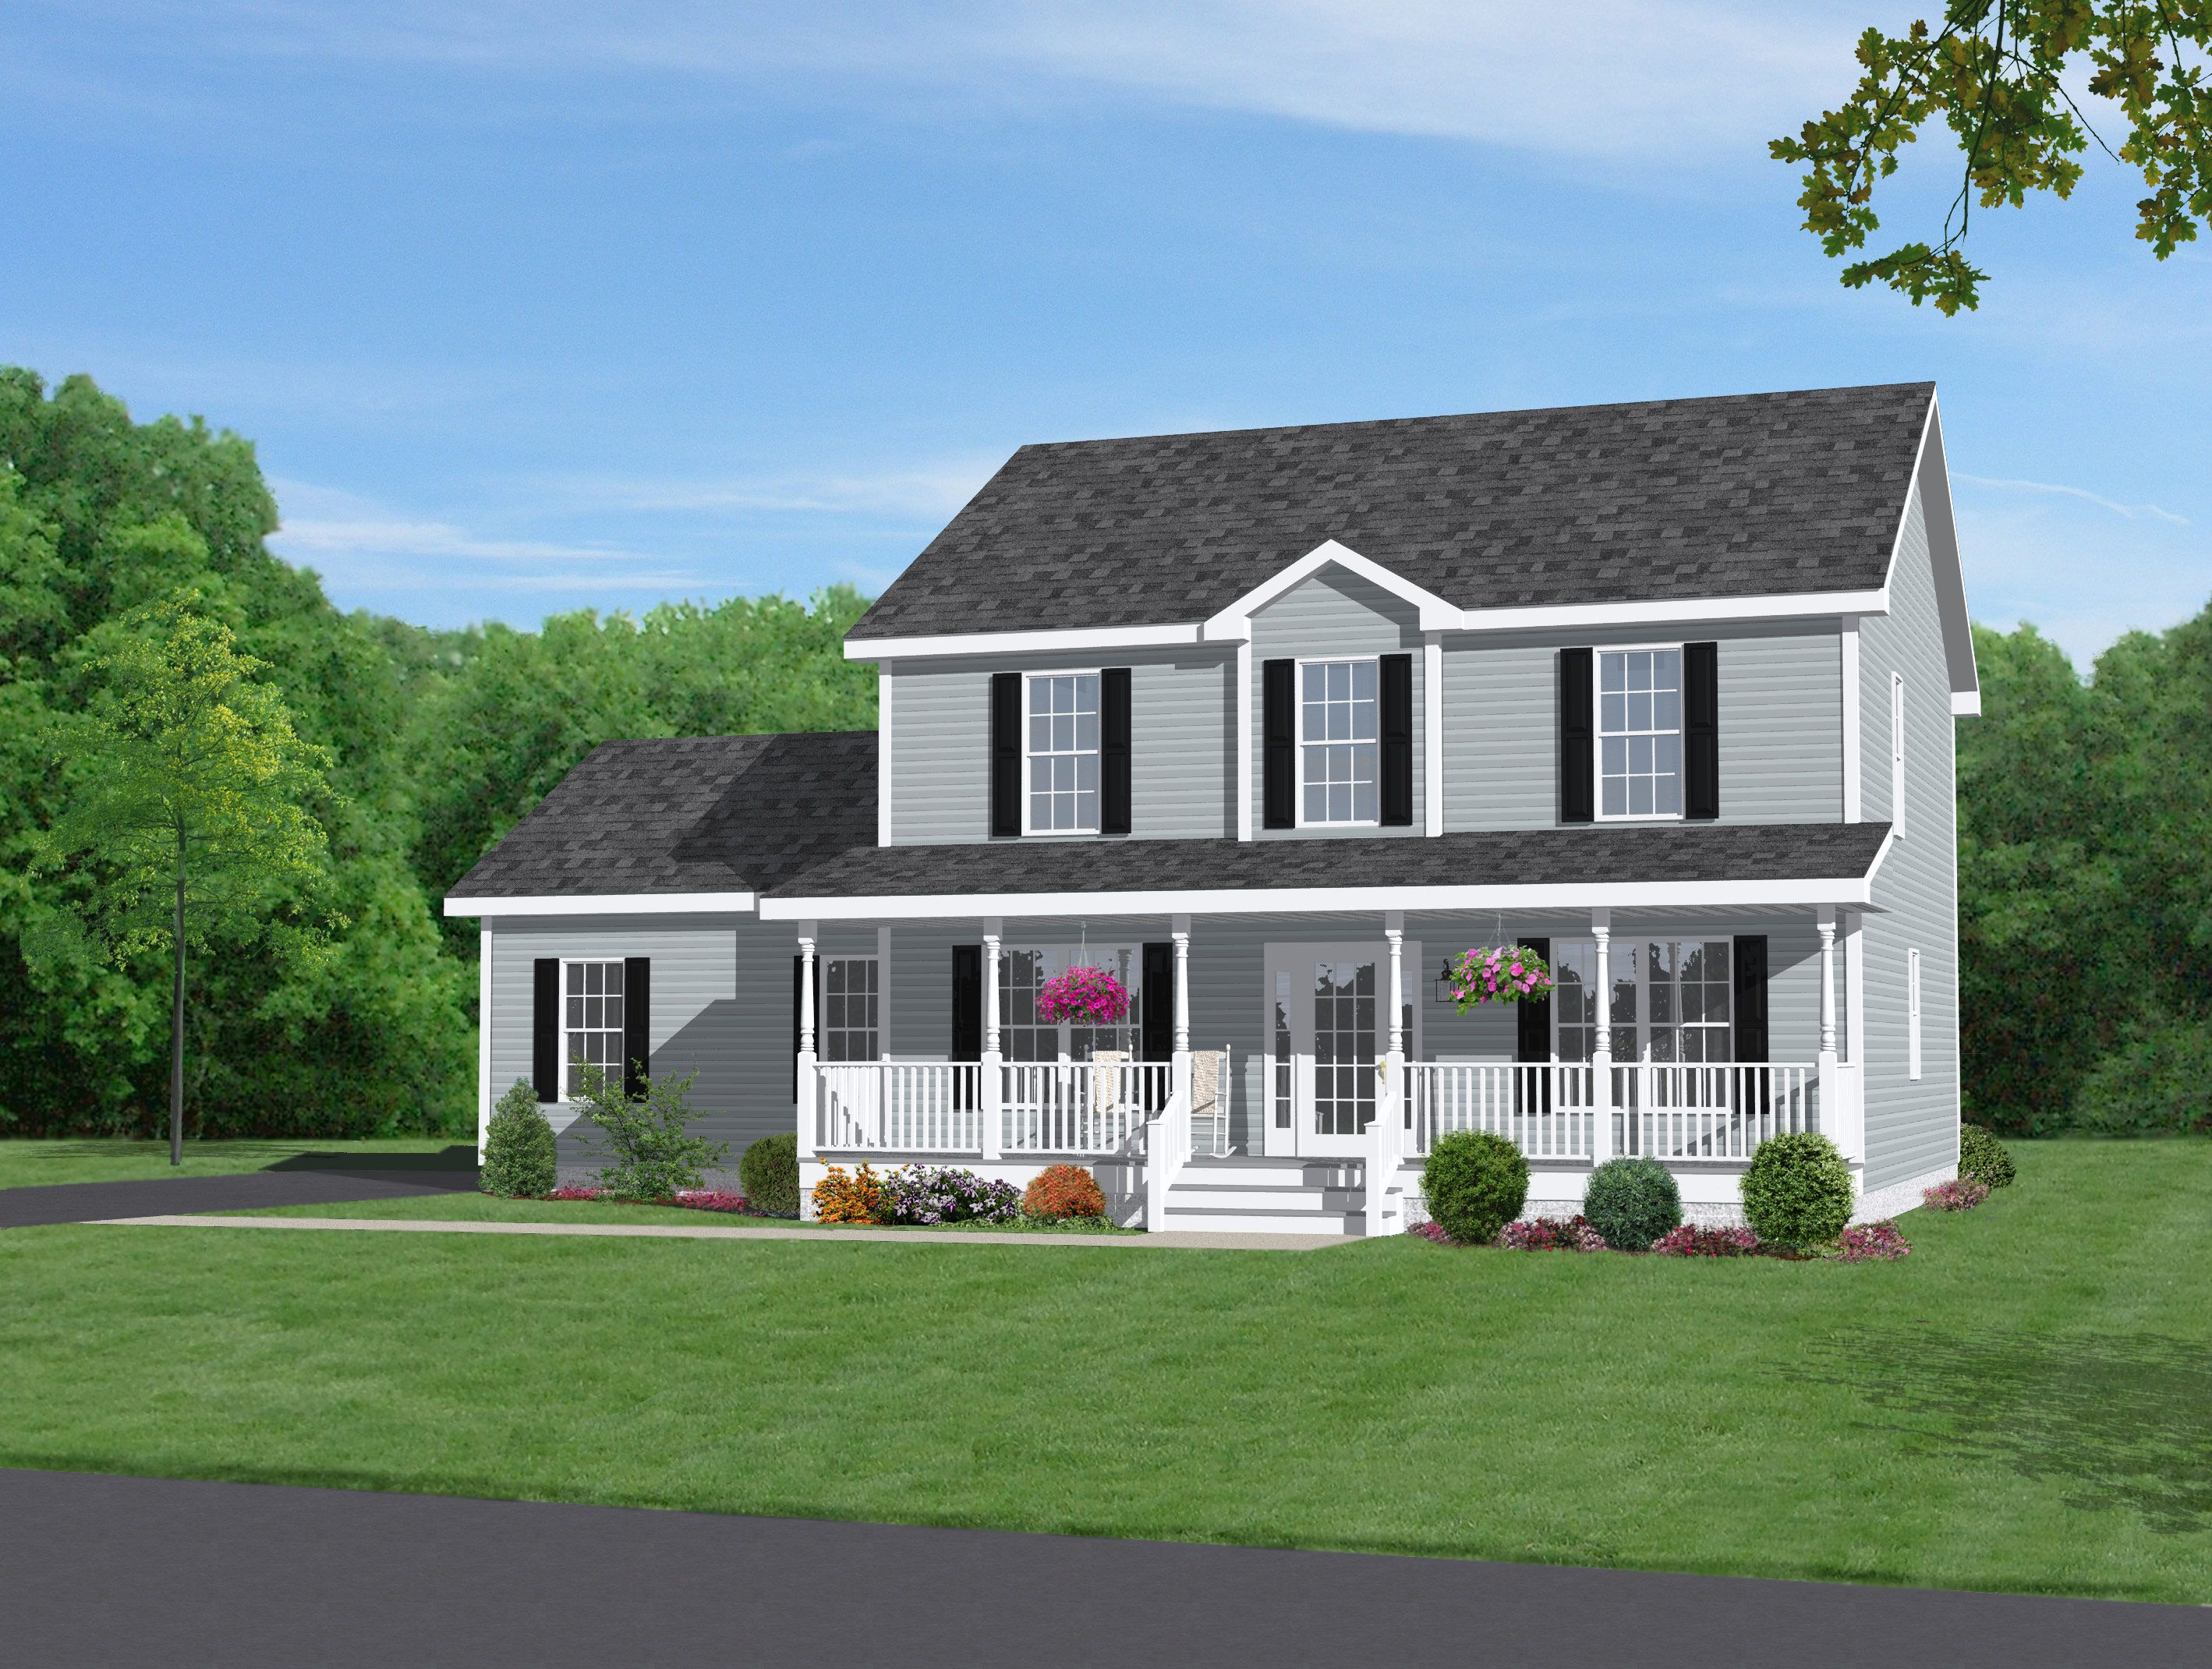 Two story home with beautiful front porch dream home Simple two story house plans